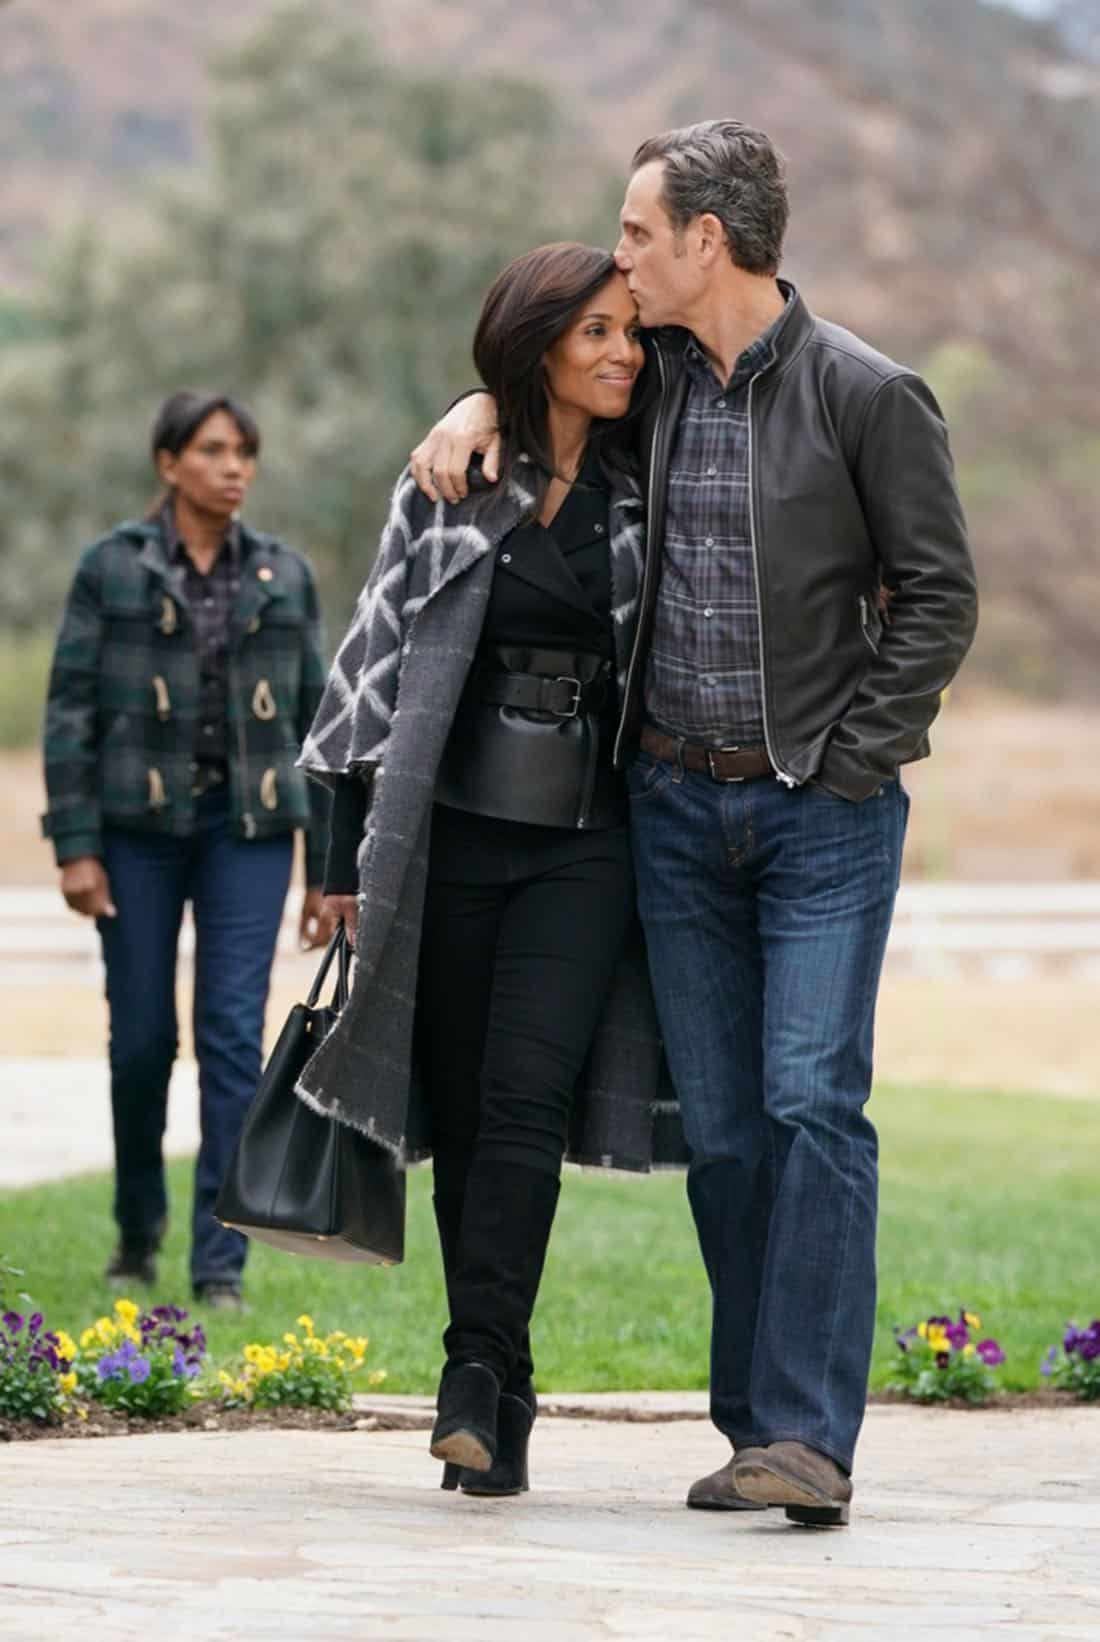 """SCANDAL - """"The People v. Olivia Pope"""" - When Olivia agrees to join Fitz in Vermont for what she thinks will be a relaxing getaway, she is shocked to find that her closest friends have orchestrated a relentless intervention. Back in Washington, Cyrus finally reveals his suspicions to Mellie about Olivia and Jake's extracurricular activities, on """"Scandal,"""" airing THURSDAY, FEB. 1 (9:00-10:00 p.m. EST), on The ABC Television Network. (ABC/Mitch Haaseth) KERRY WASHINGTON, TONY GOLDWYN"""